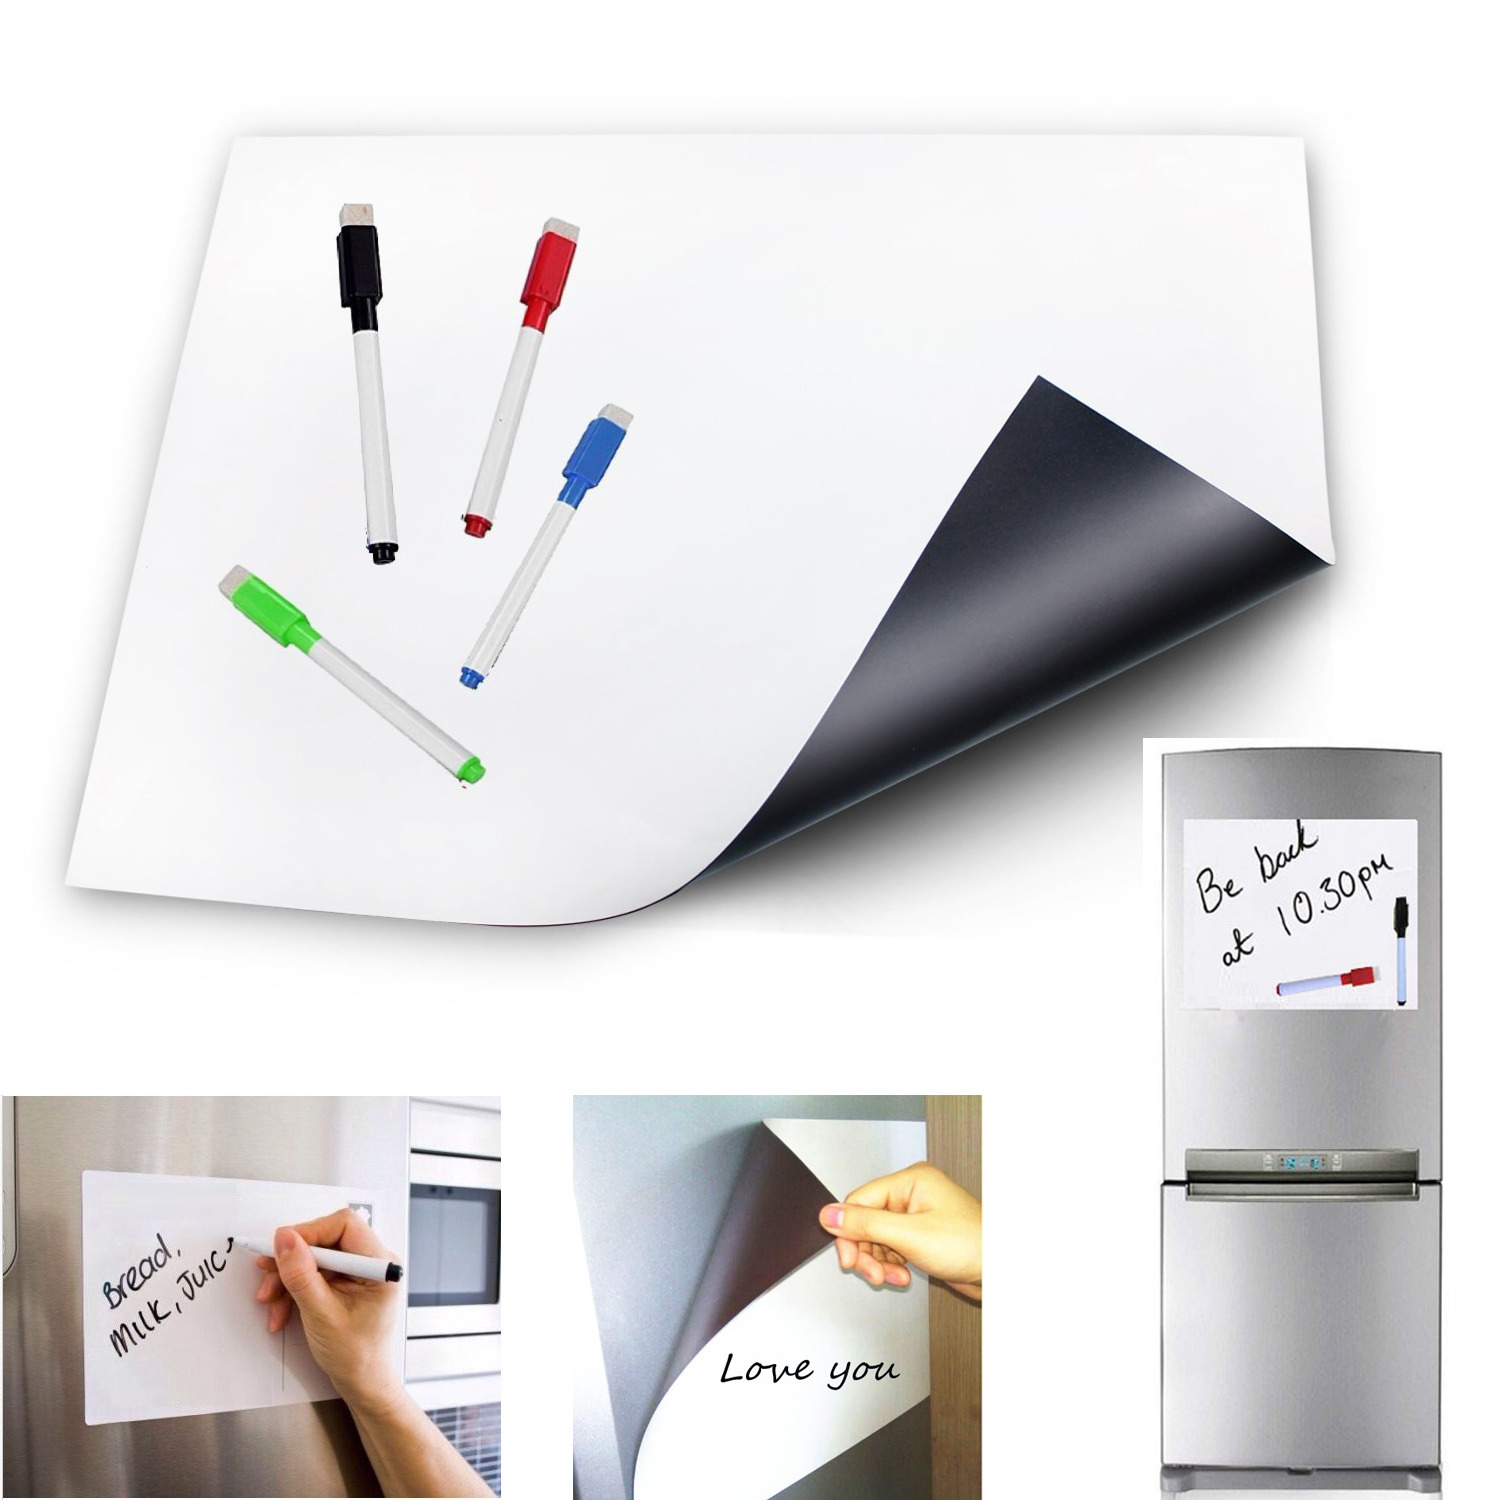 Magnet Whiteboard A4 Soft Magnetic Board Dry wipe Drawing Recording Board for Fridge Magnets Refrigerator Sticker Kitchen Decor-in Fridge Magnets from Home & Garden